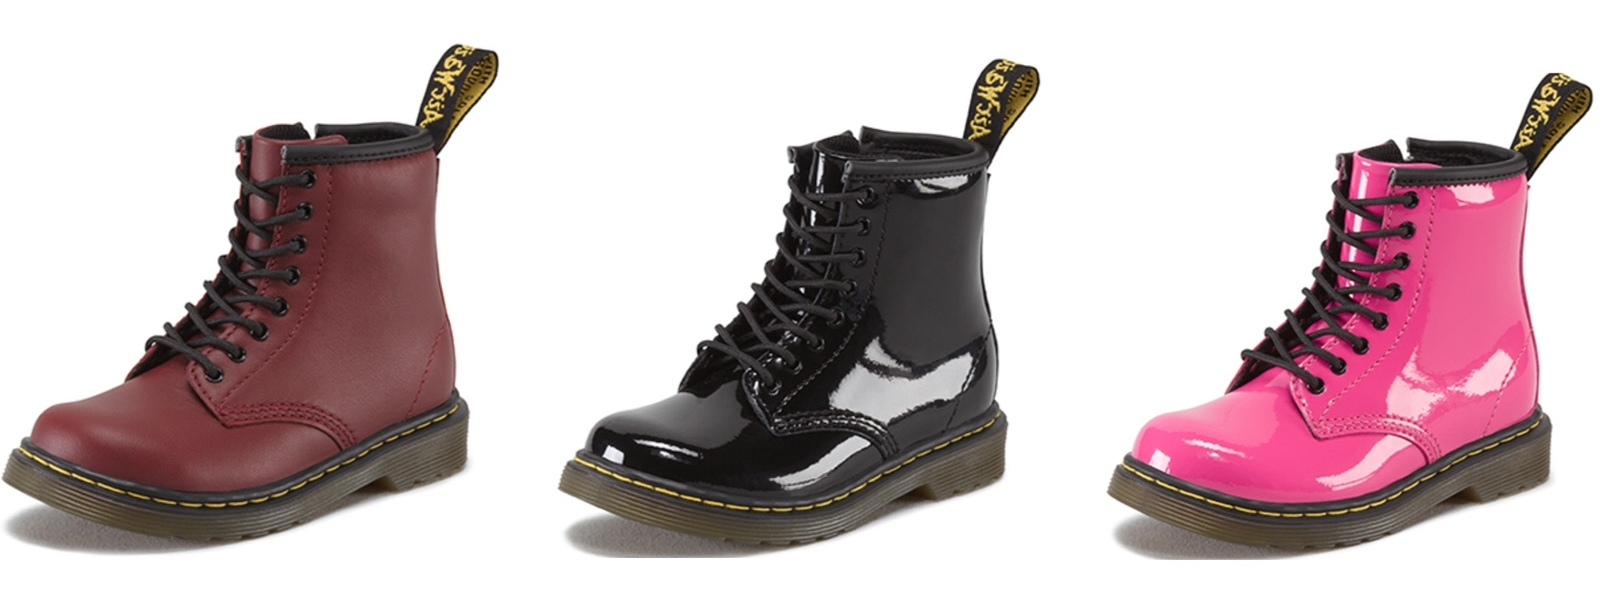 The Dr Marten Toddler 1460. Available to buy at  www.drmartens.com